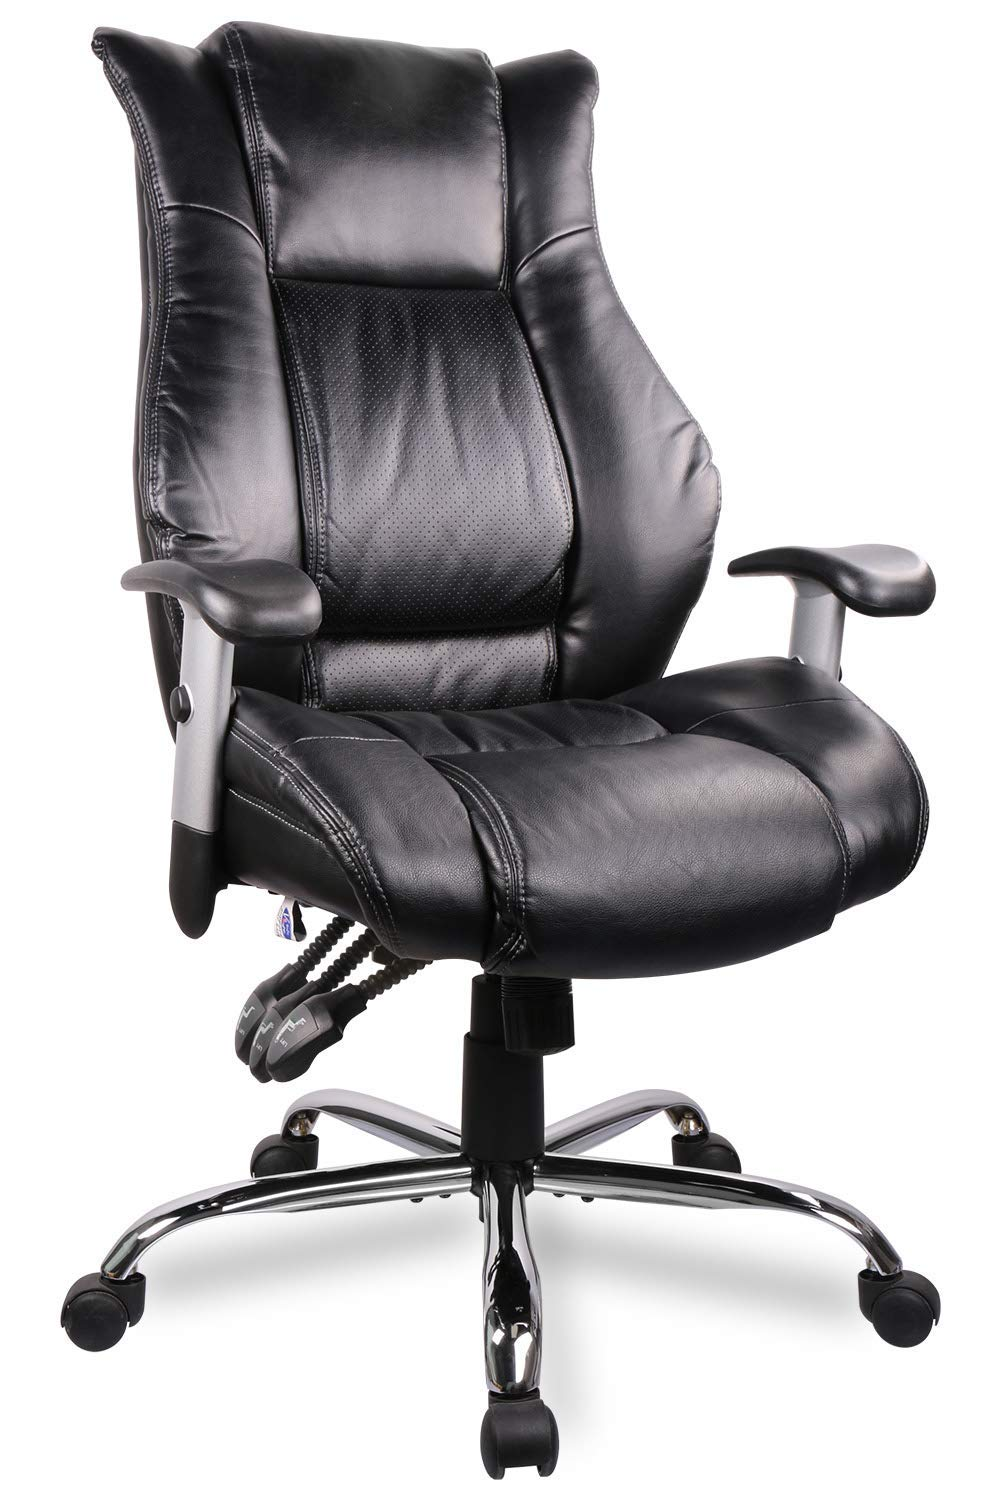 Smugdesk Executive Office Chair Ergonomic Heavy Duty Chair Leather Adjustable Swivel Comfortable Rolling Chair by SMUGDESK